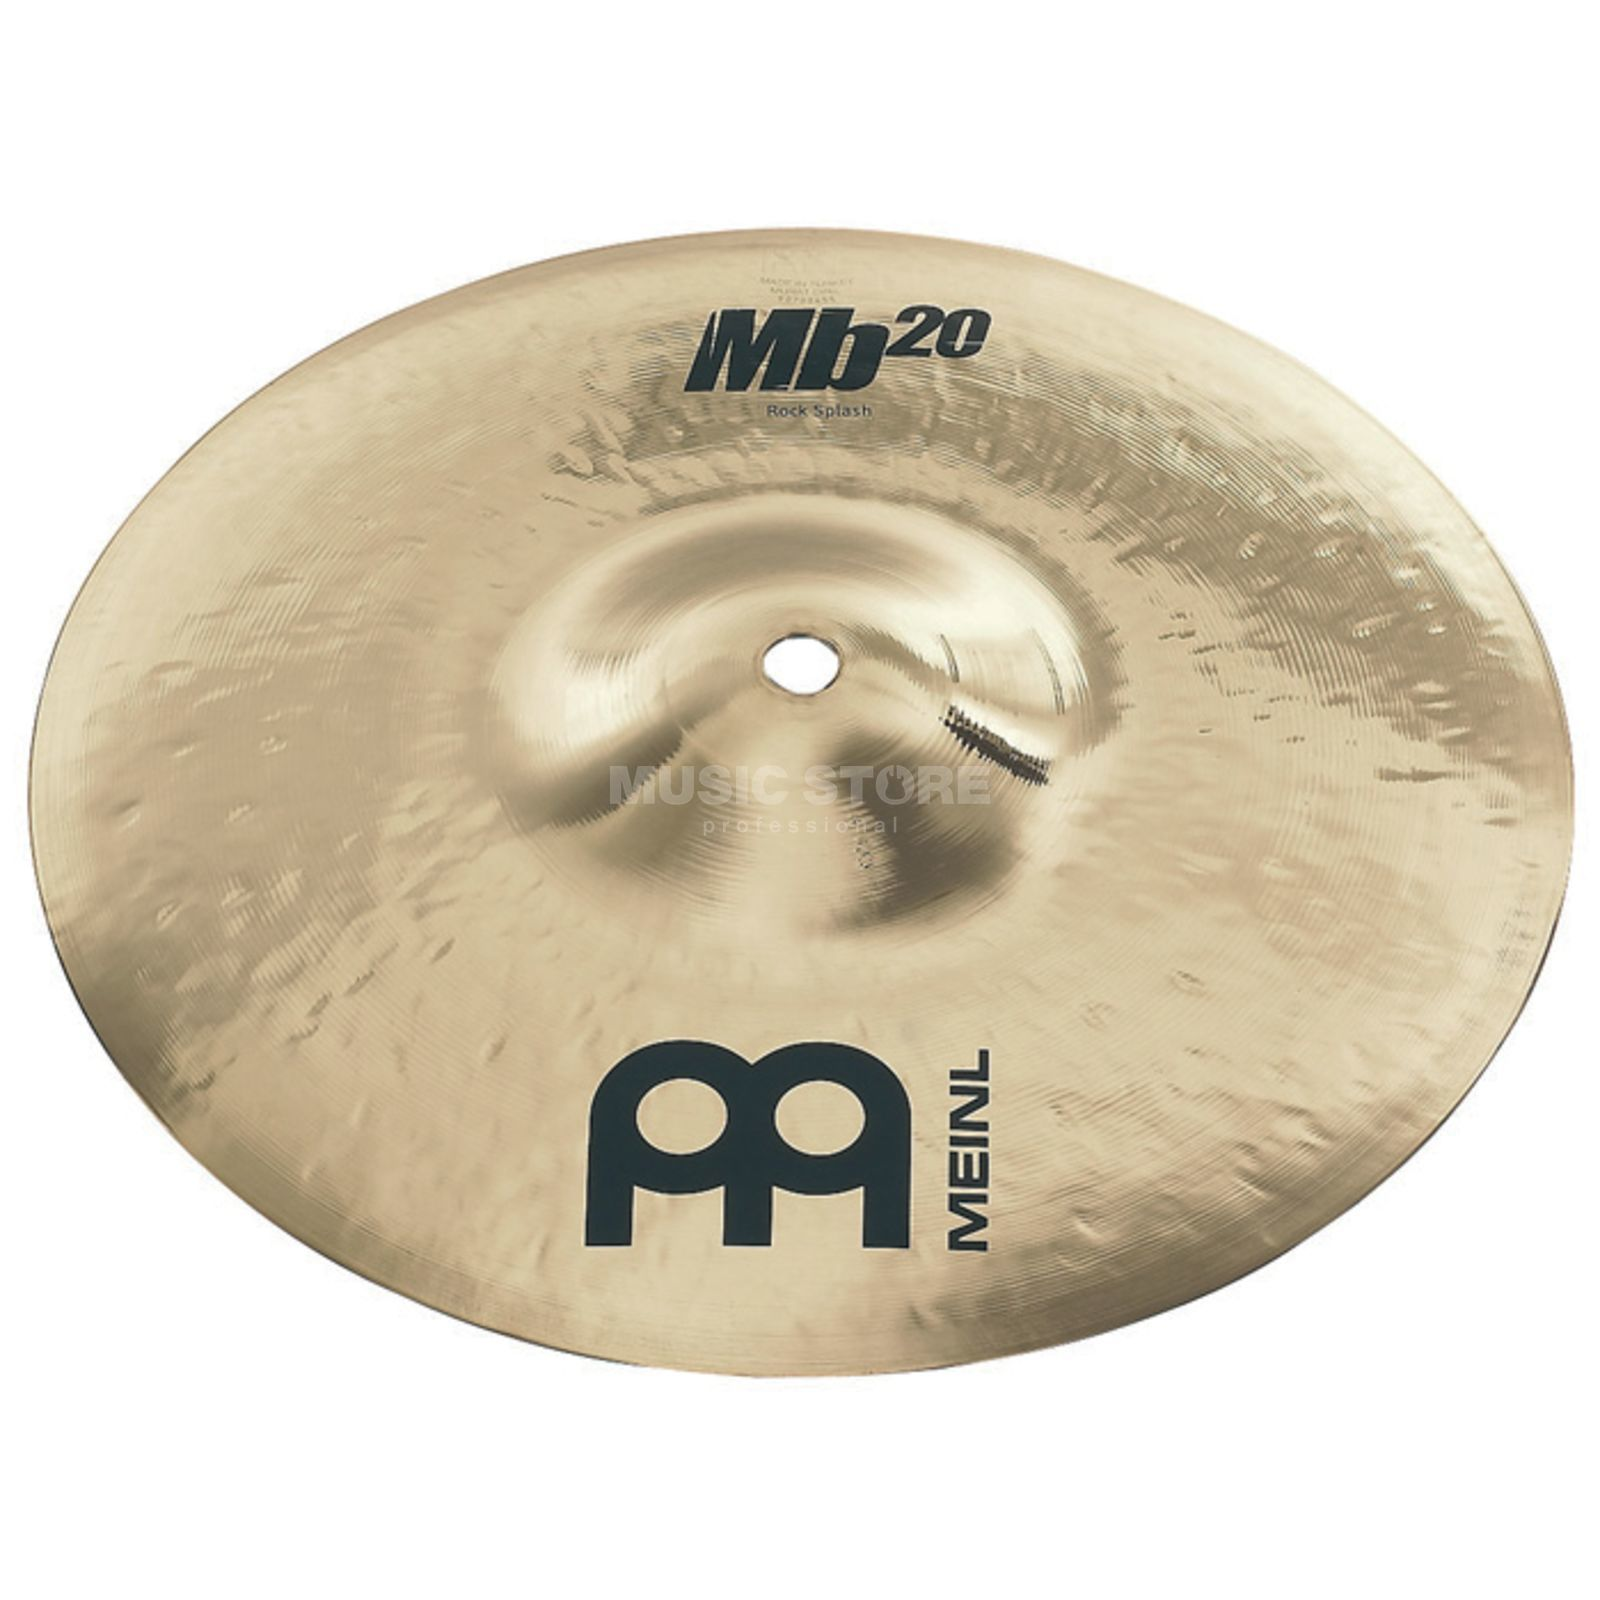 "Meinl MB20 Rock Splash 10"" MB20-10RS-B, finition brillante Image du produit"